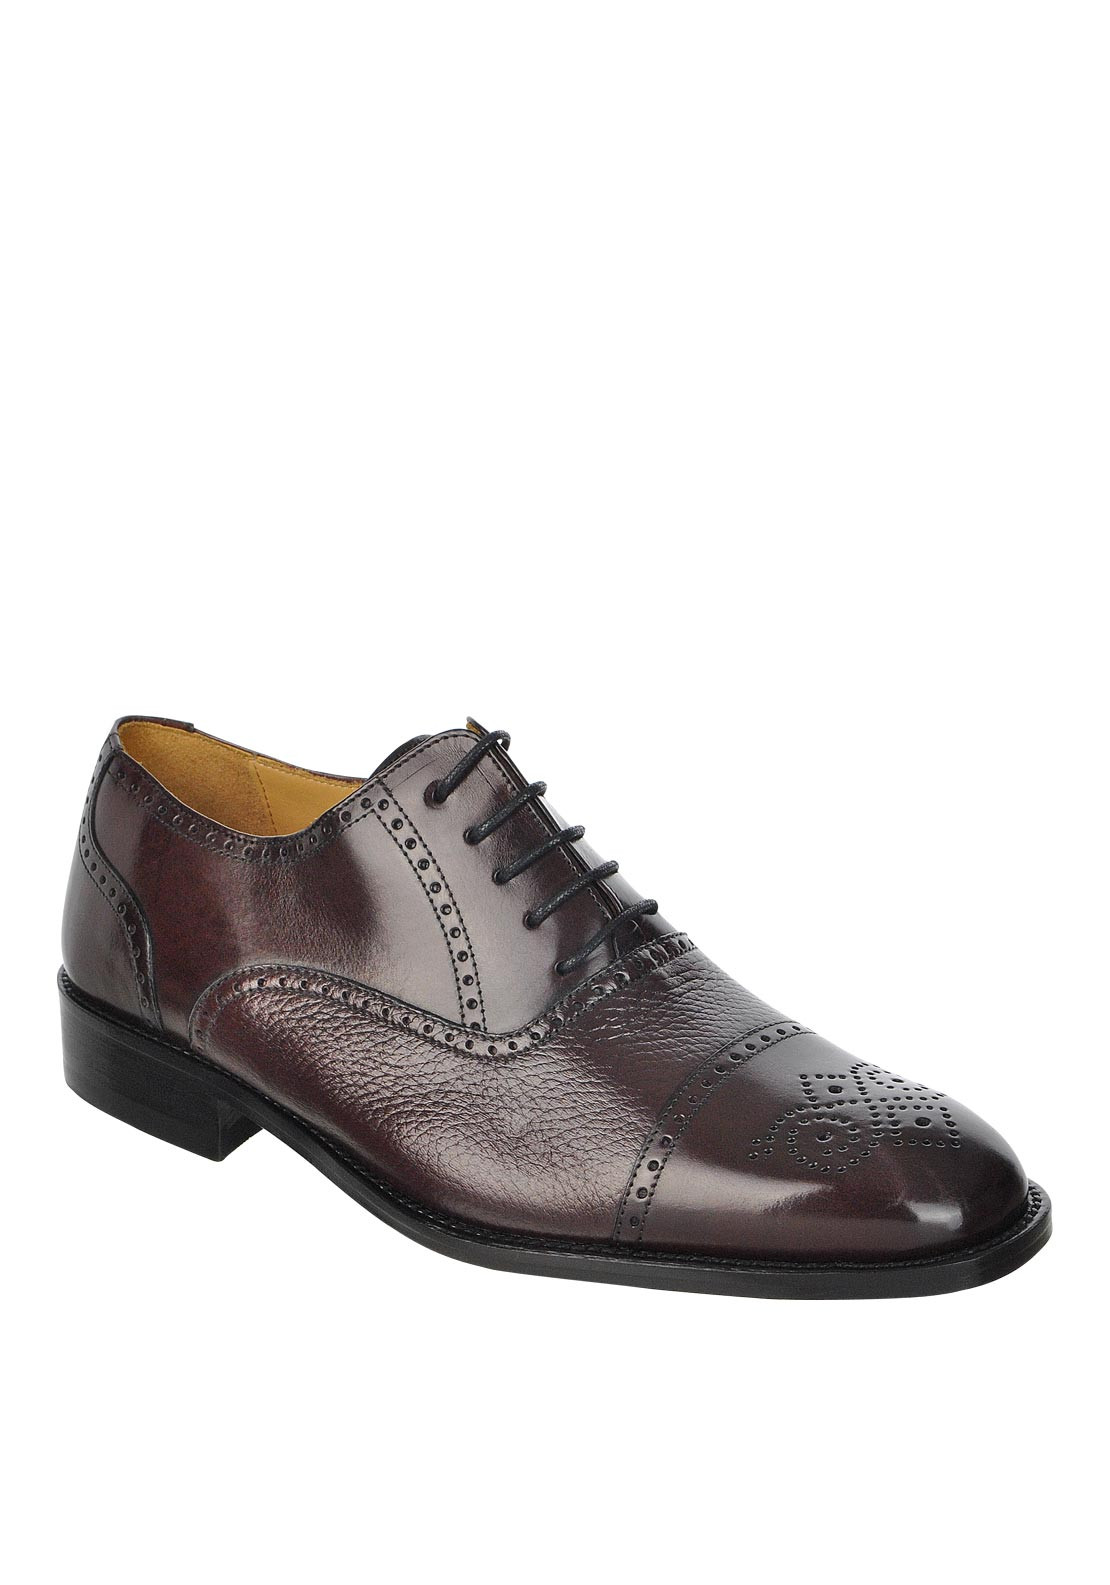 Mezlan Chelsea Leather Lace-Up Shoe, Burgundy